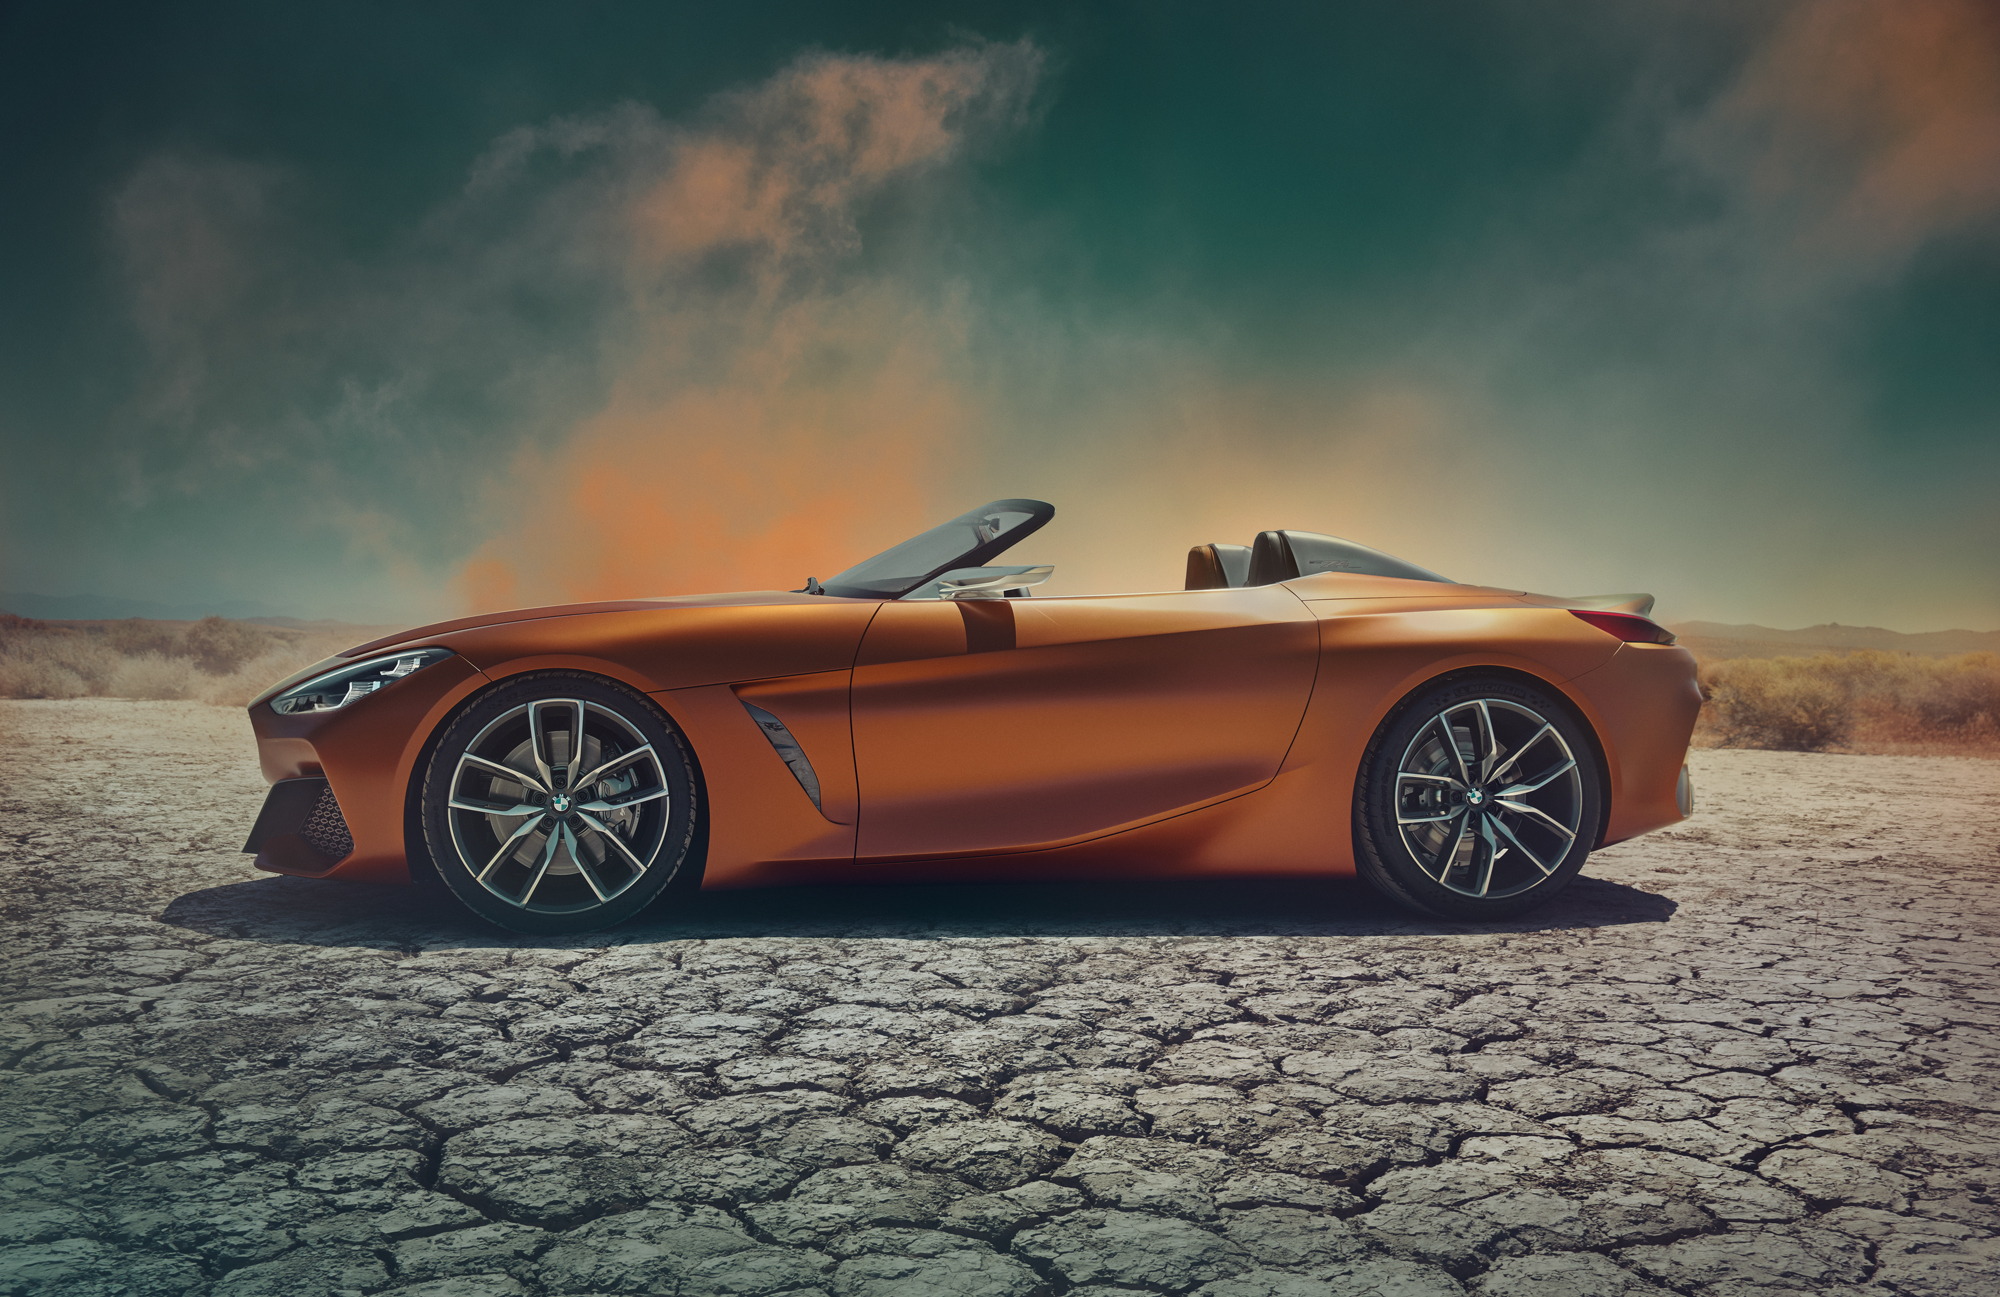 BMW Concept Z4 on